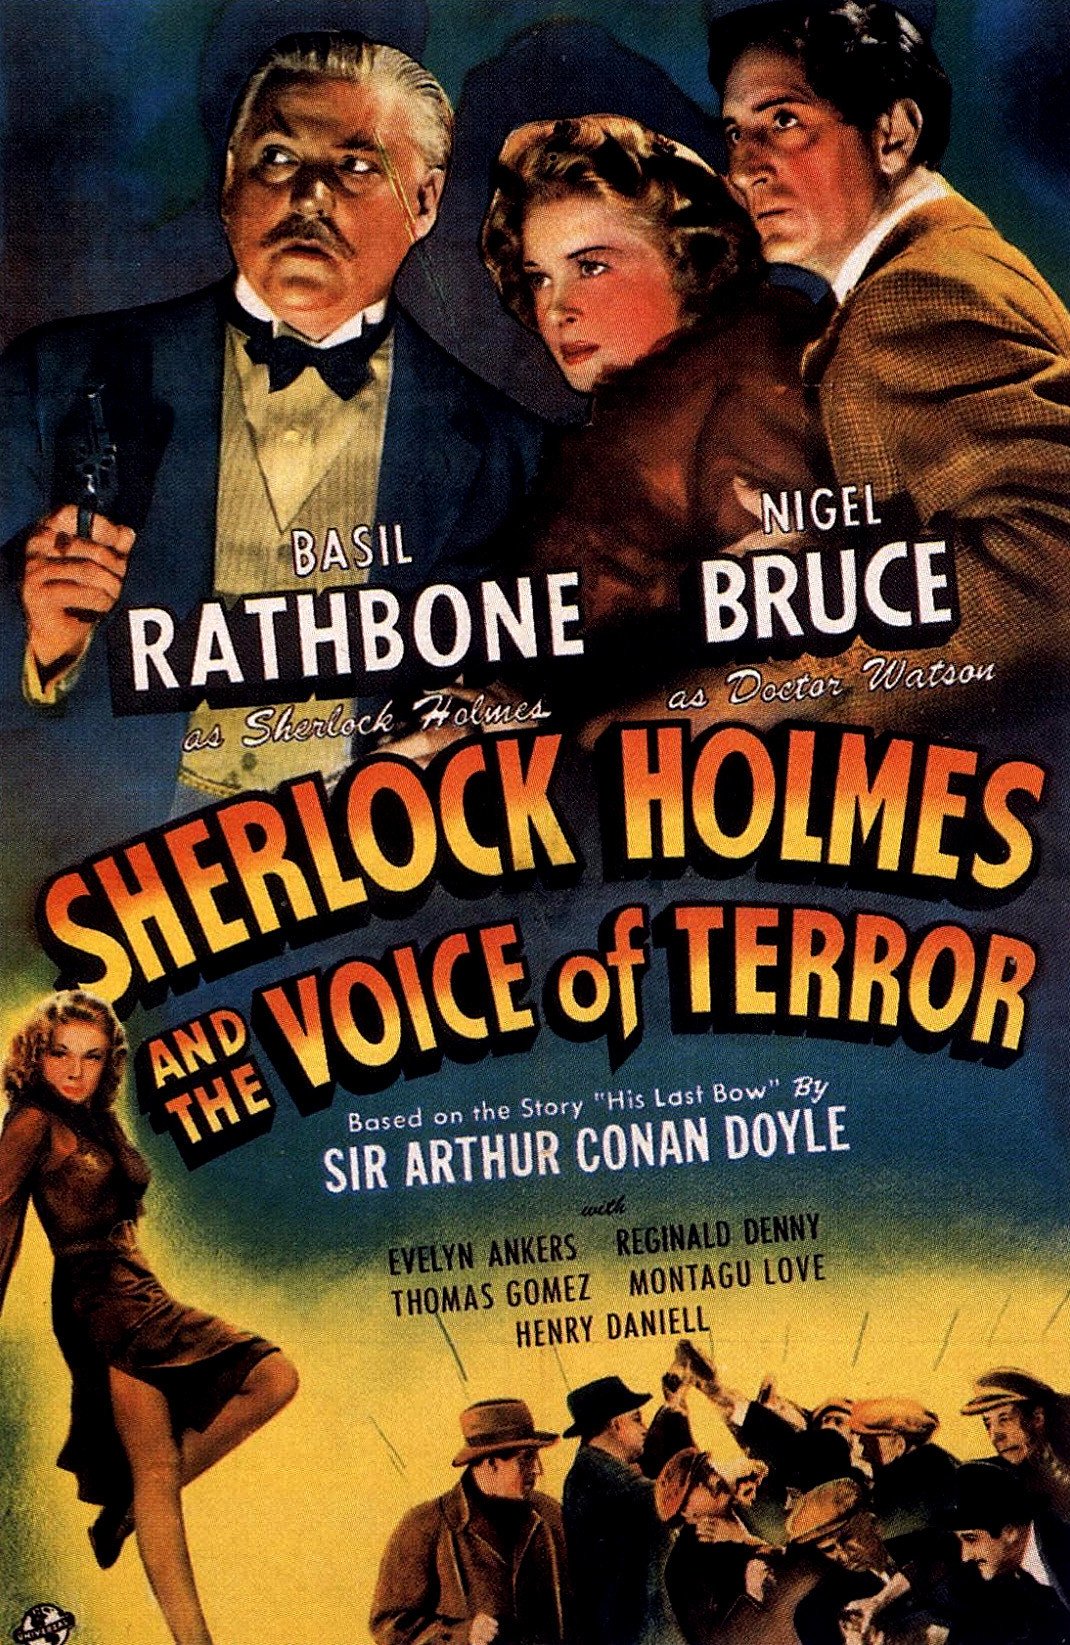 Image result for sherlock holmes and the voice of terror